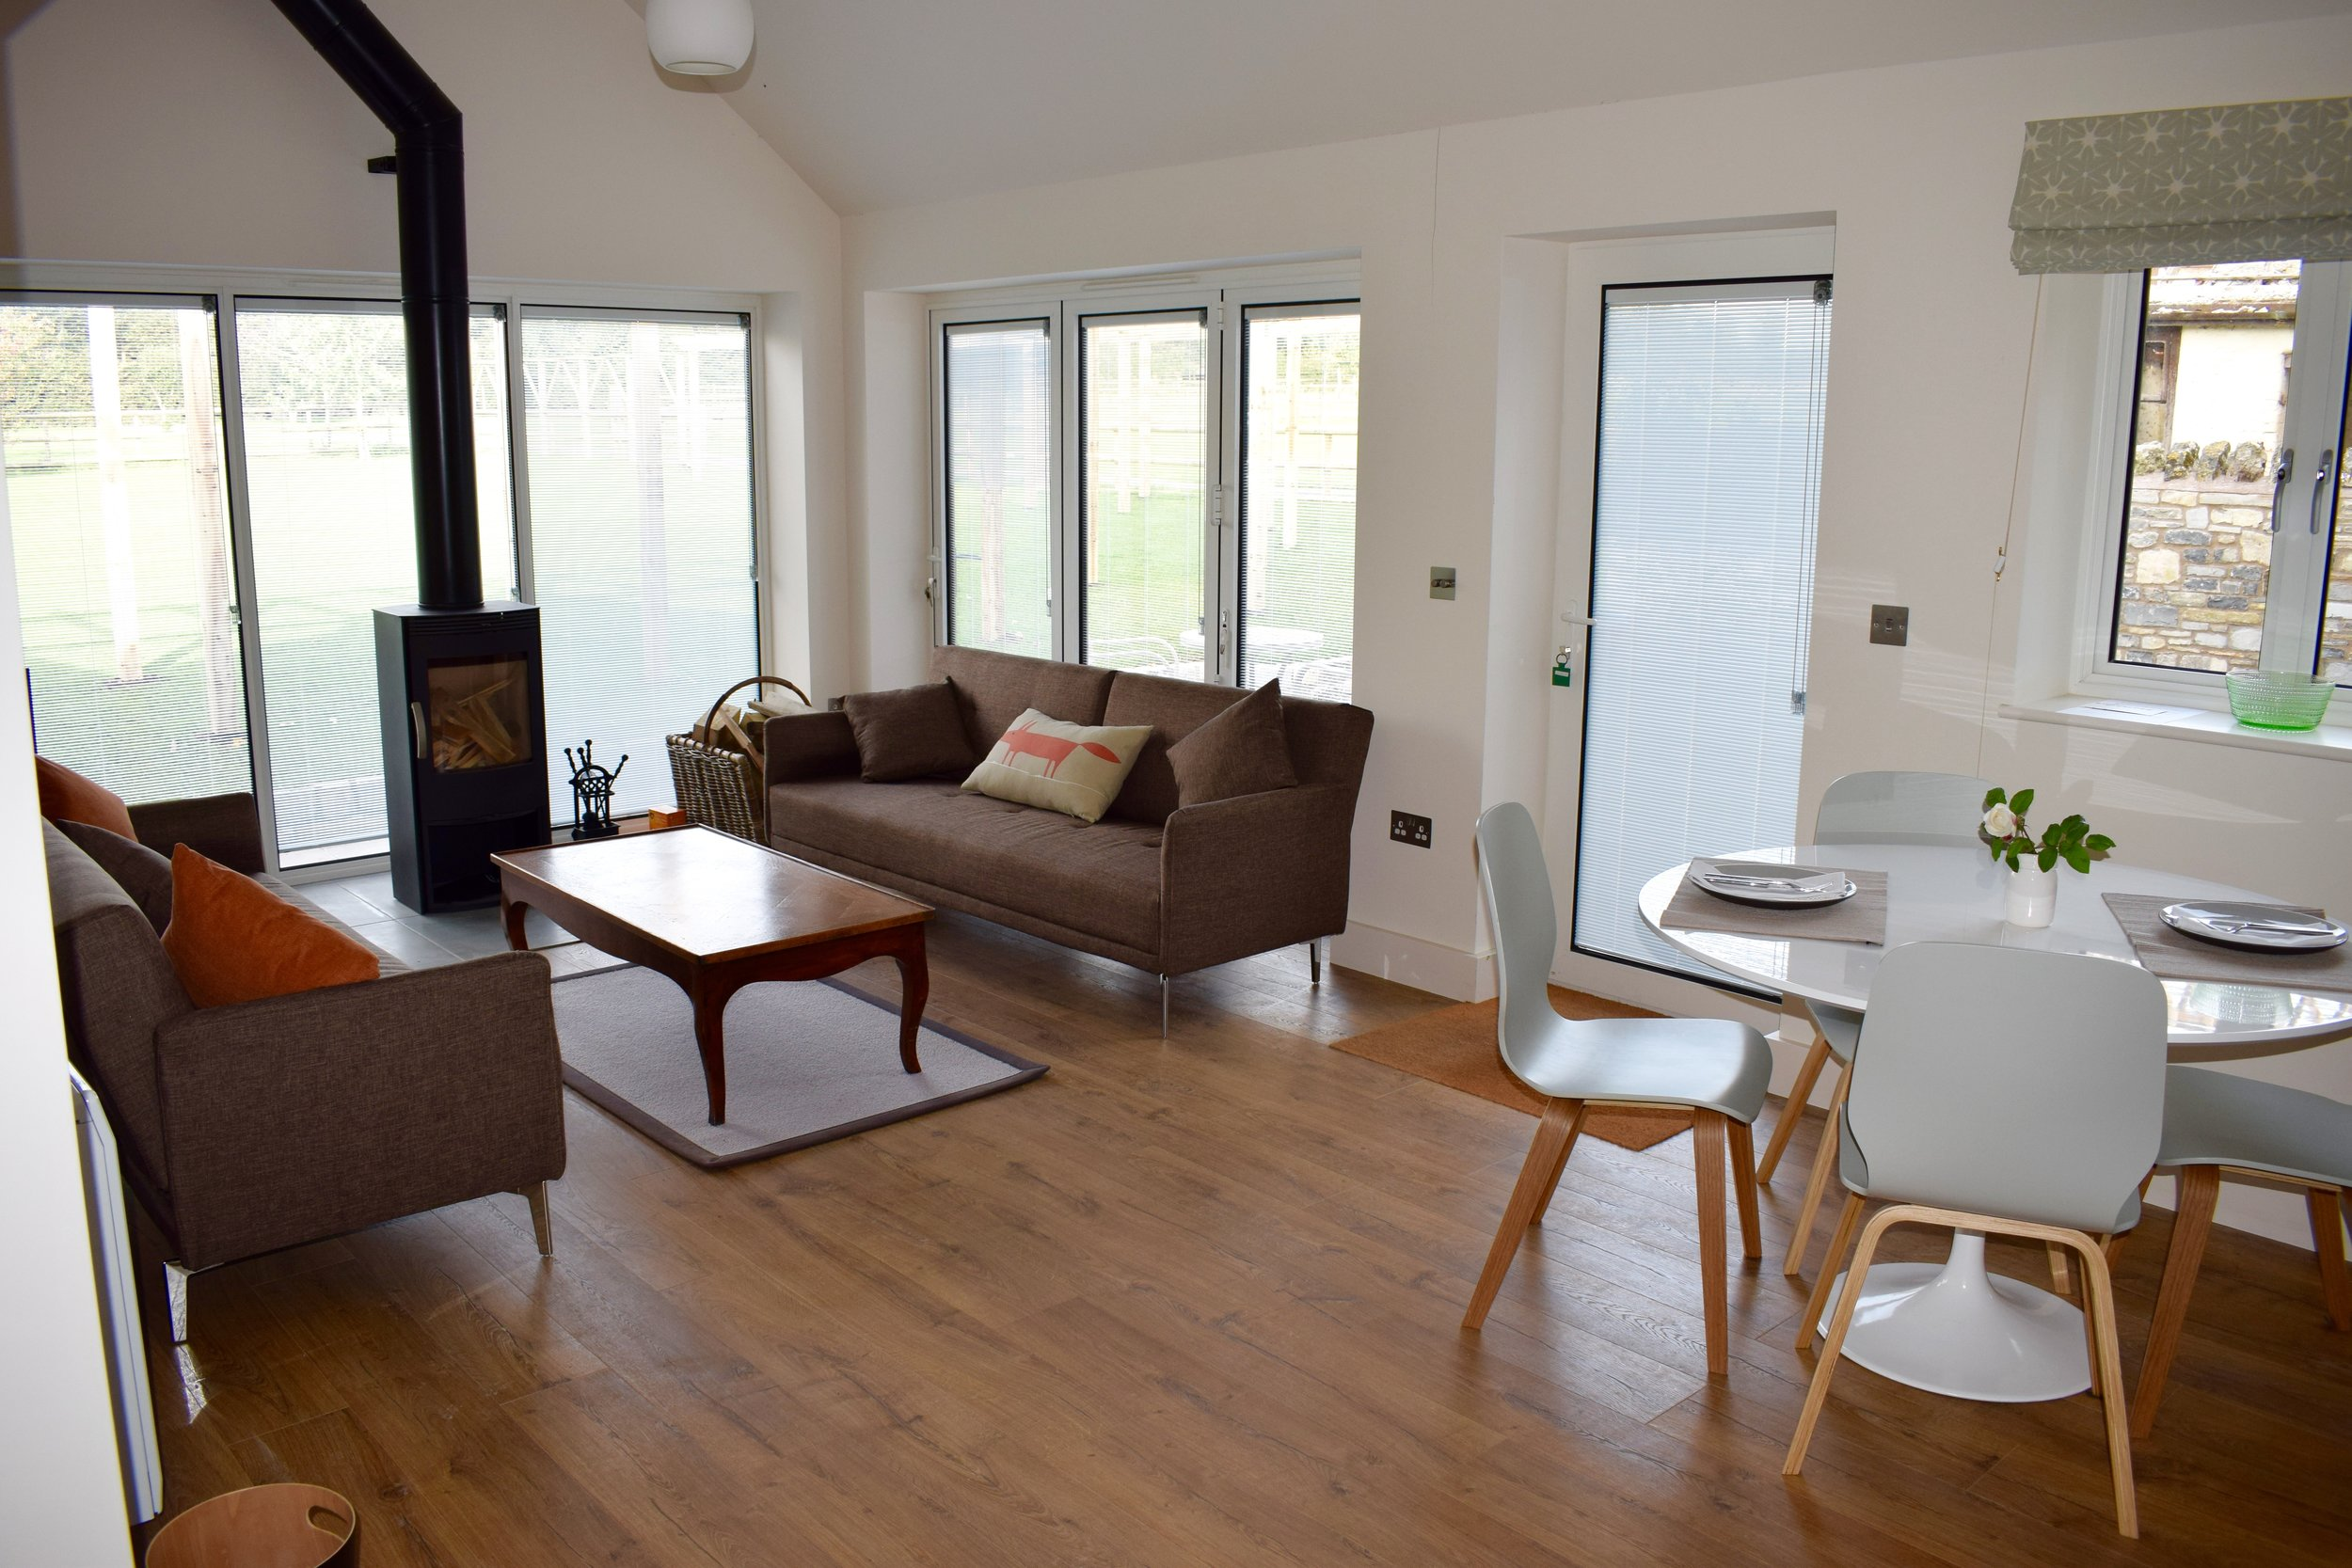 THE DUCK HOUSE - SLEEPS UP TO 4  Features: Two good-sized en-suite bedrooms, outside seating area, kitchen, log burner, wi-fi.